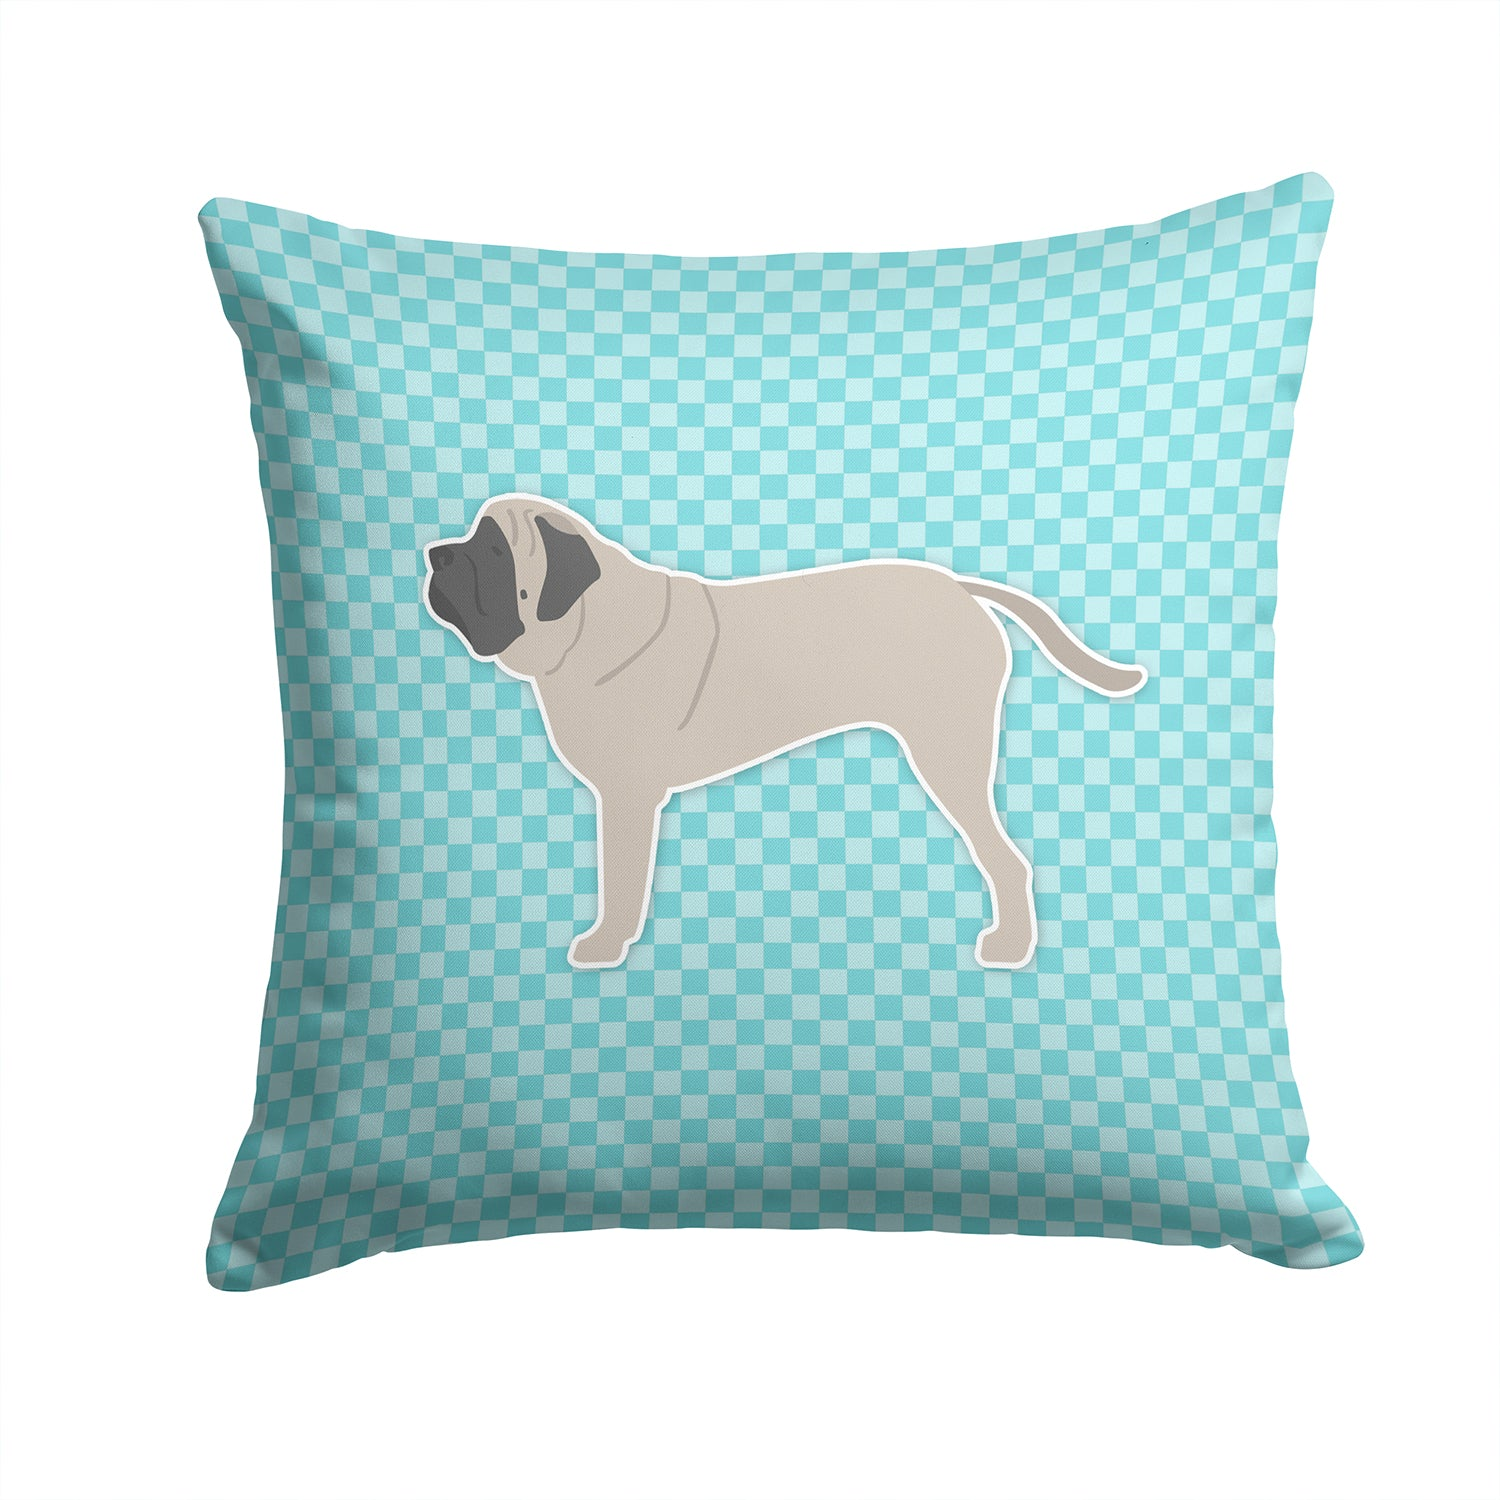 English Mastiff Checkerboard Blue Fabric Decorative Pillow BB3756PW1414 by Caroline's Treasures